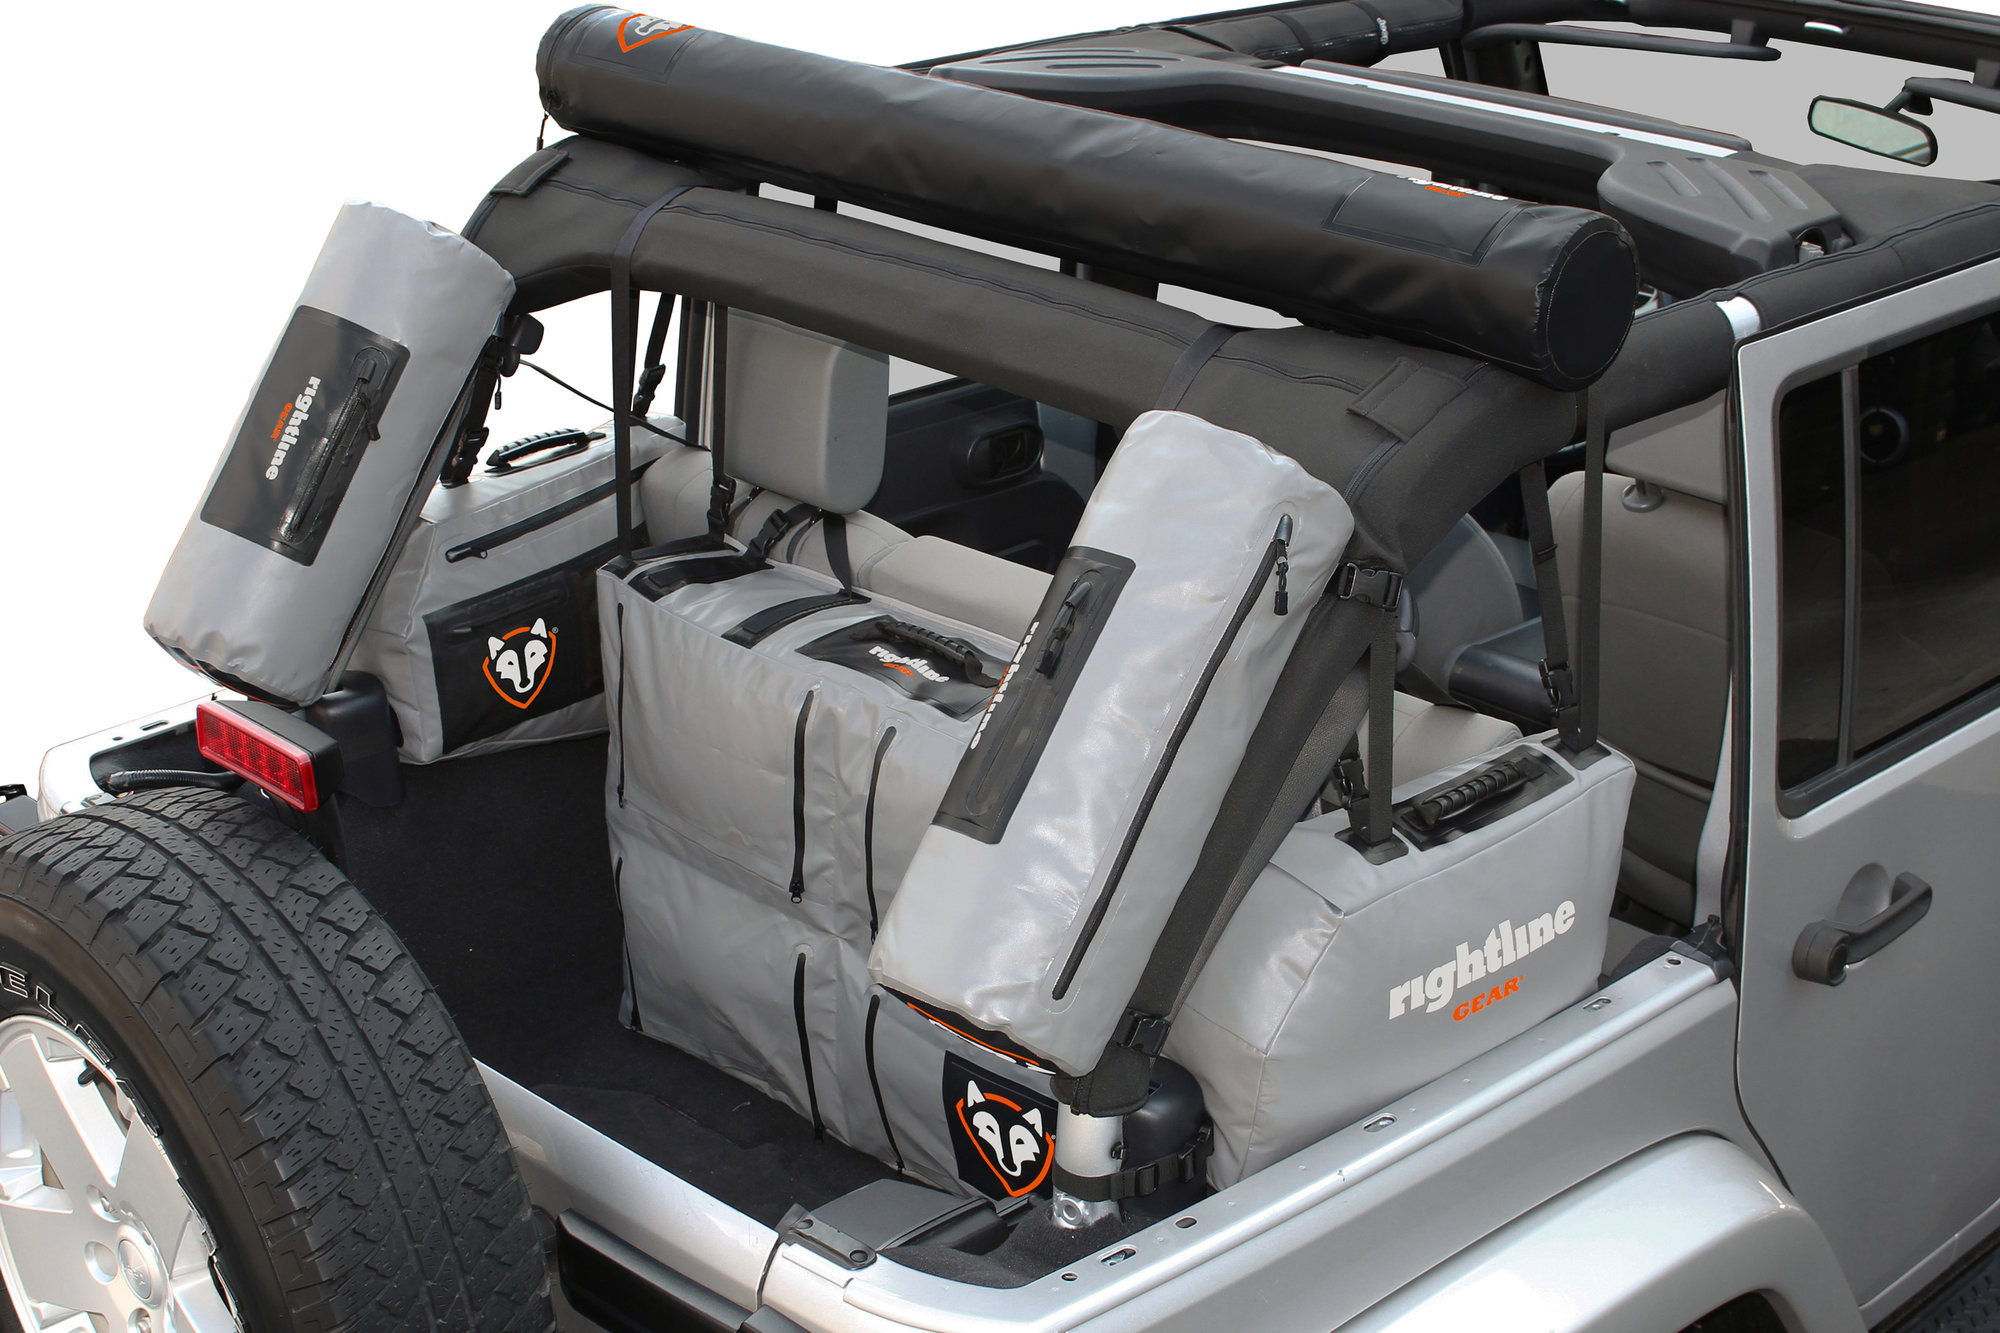 Rightline Gear 4x4 Side Storage Bags For 07 17 Jeep